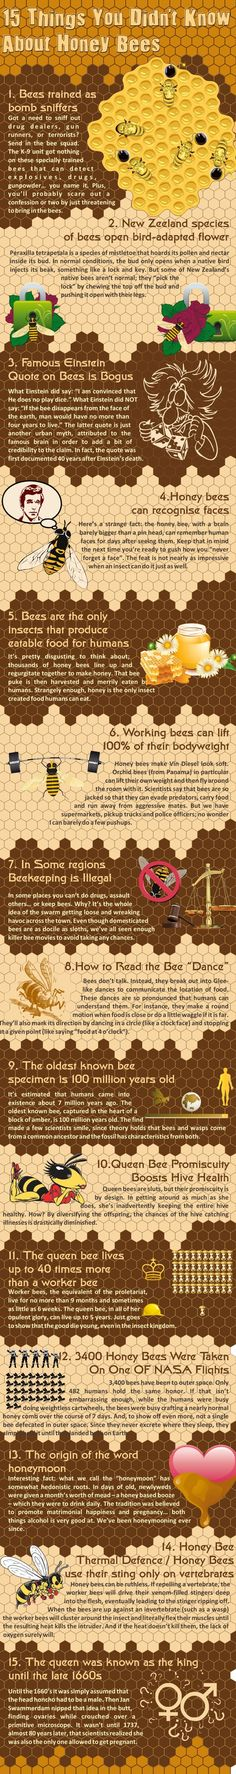 15 things you didn't know about honey bees [Infographic]